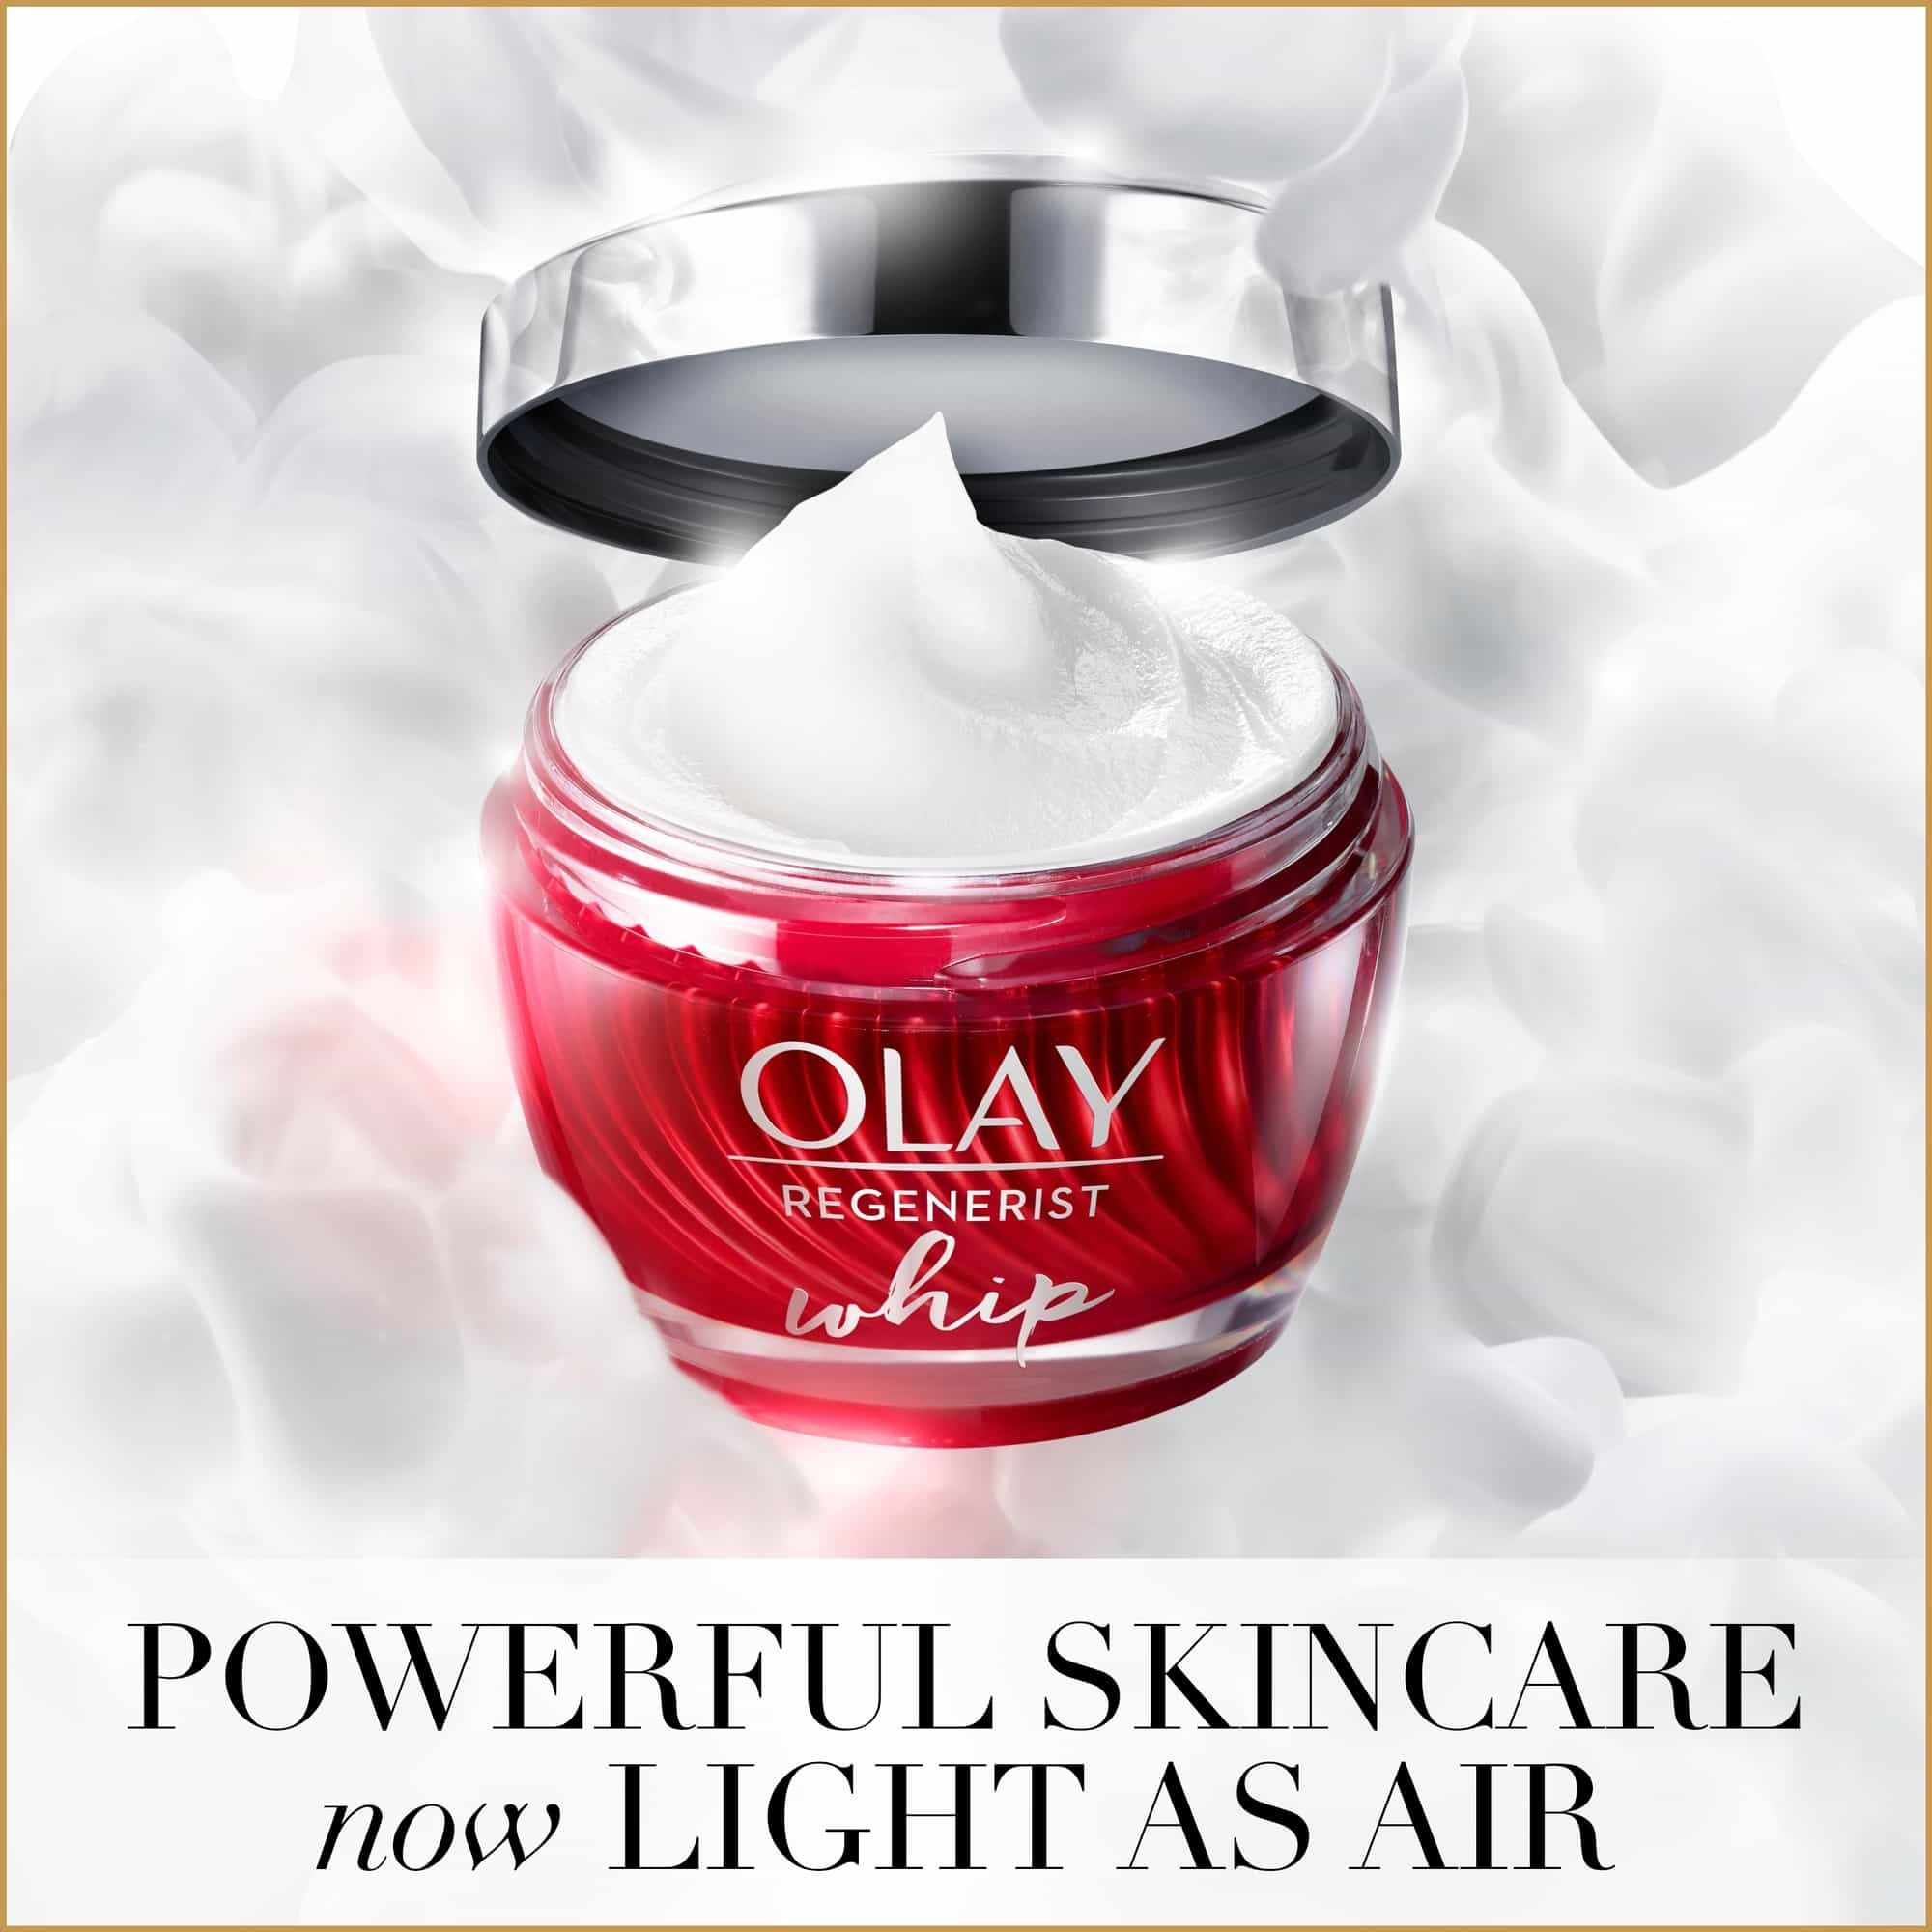 Olay Cosmetics and Beauty minimal content for Amazon by